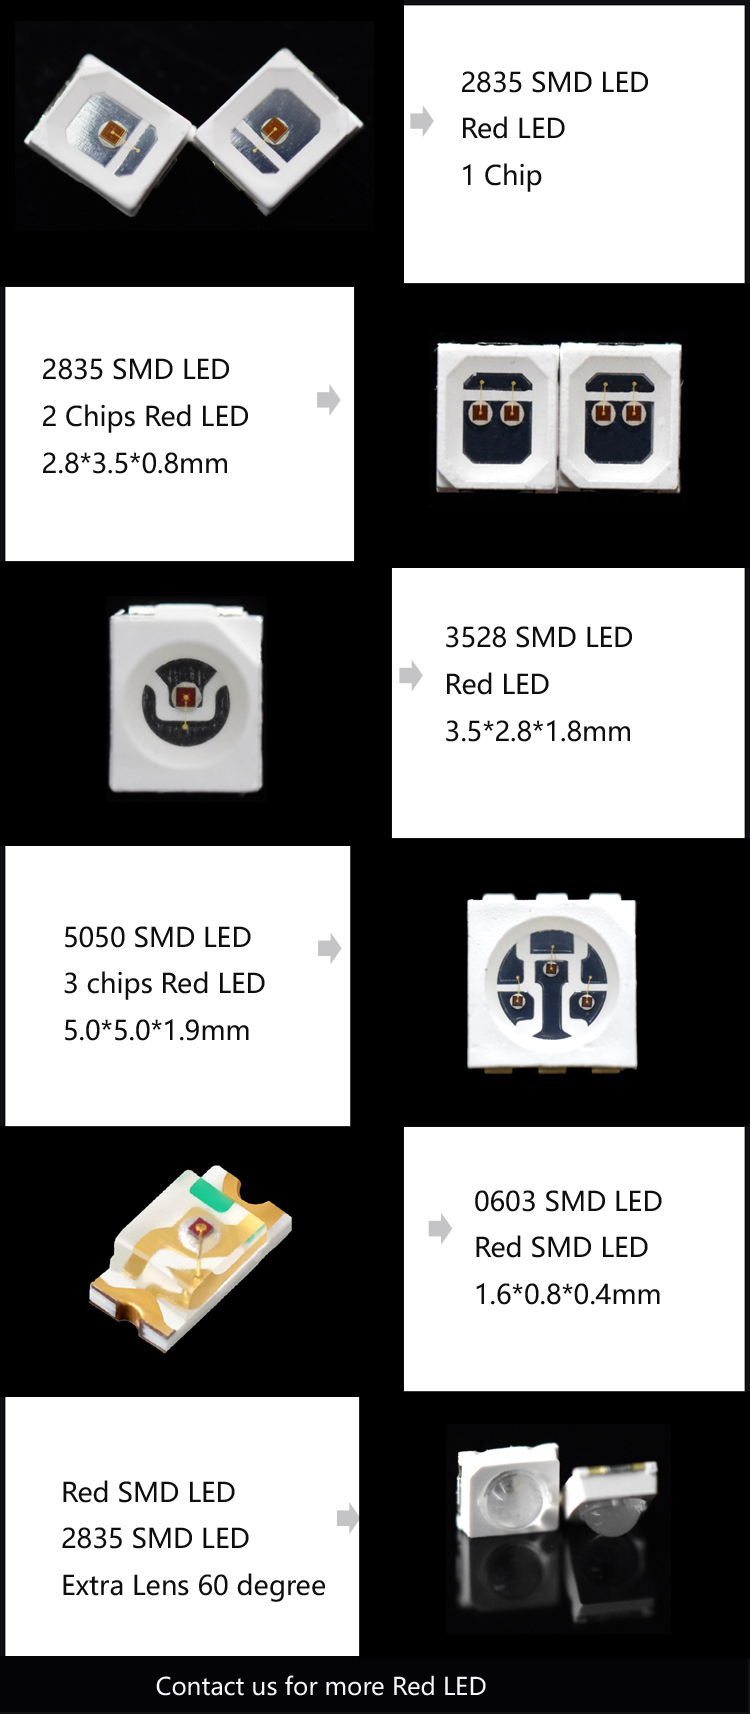 Red SMD LED